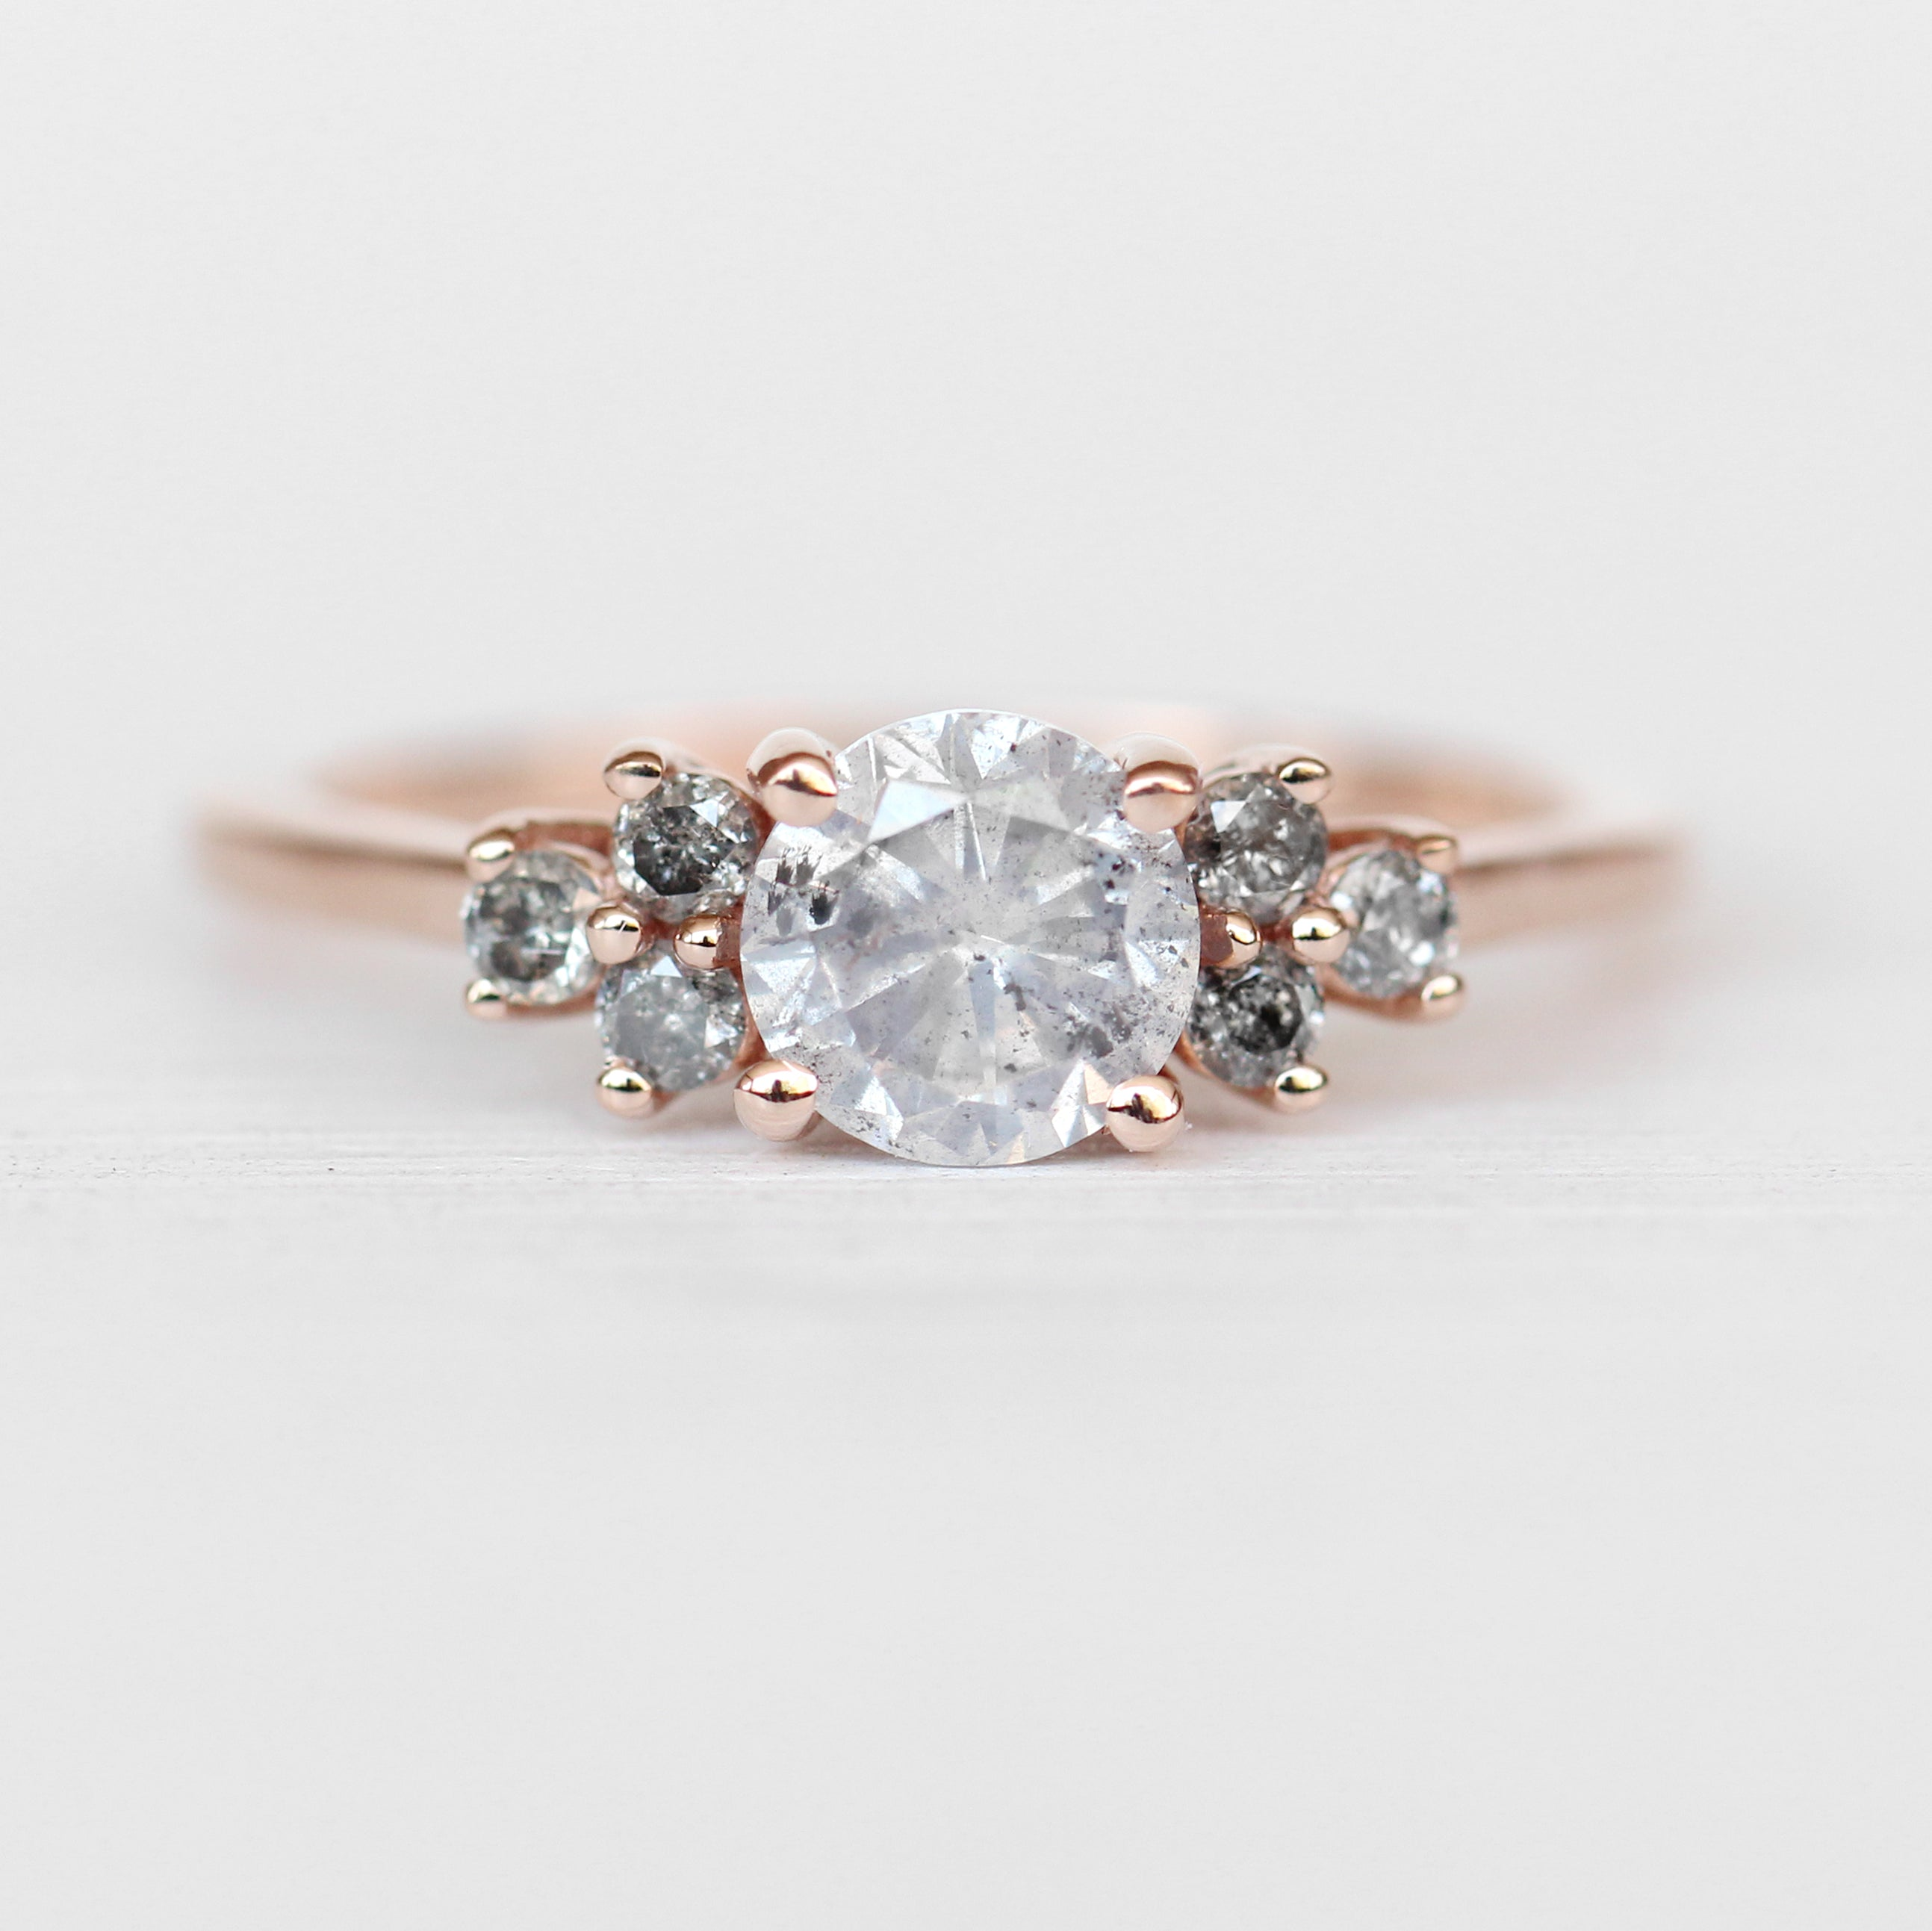 Veragene Ring with a Light Gray Celestial Diamond in 10k Rose Gold - Ready to Size and Ship